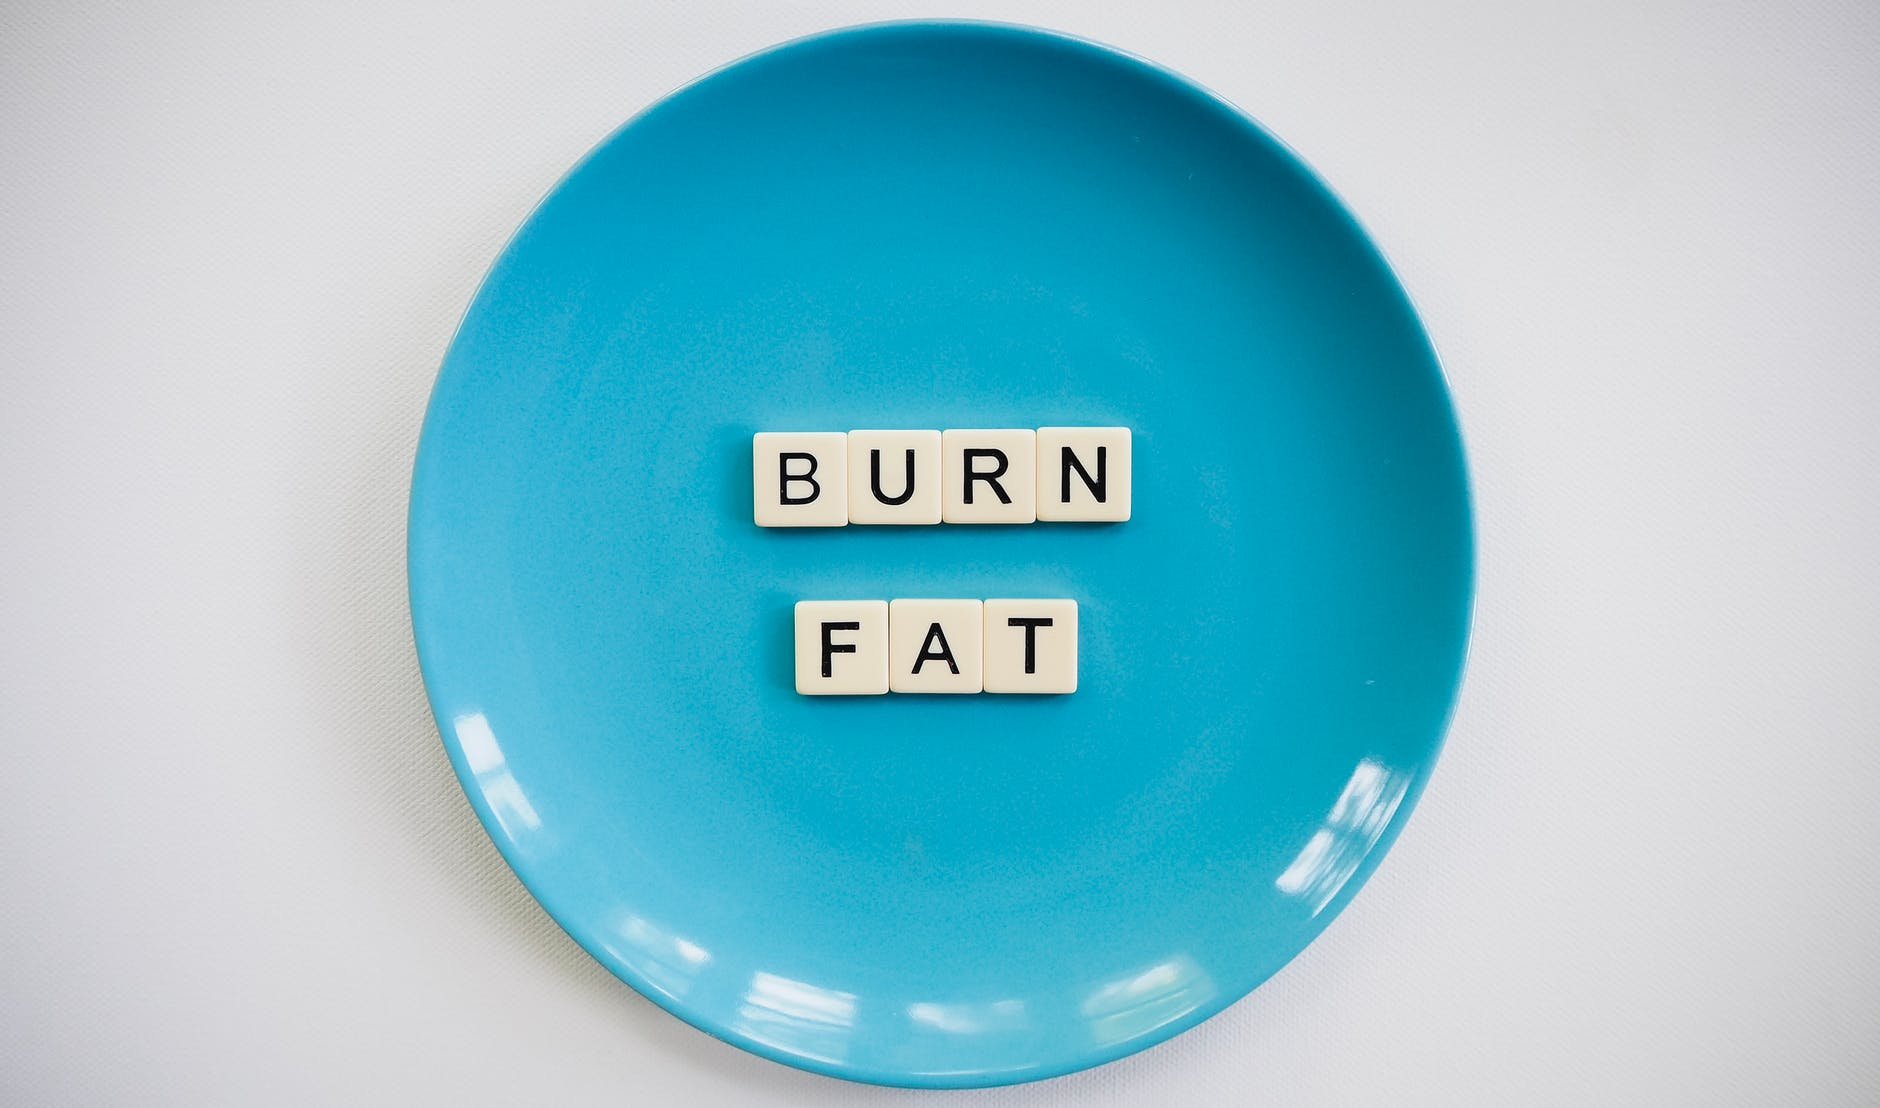 photo of a burn fat text on round blue plate